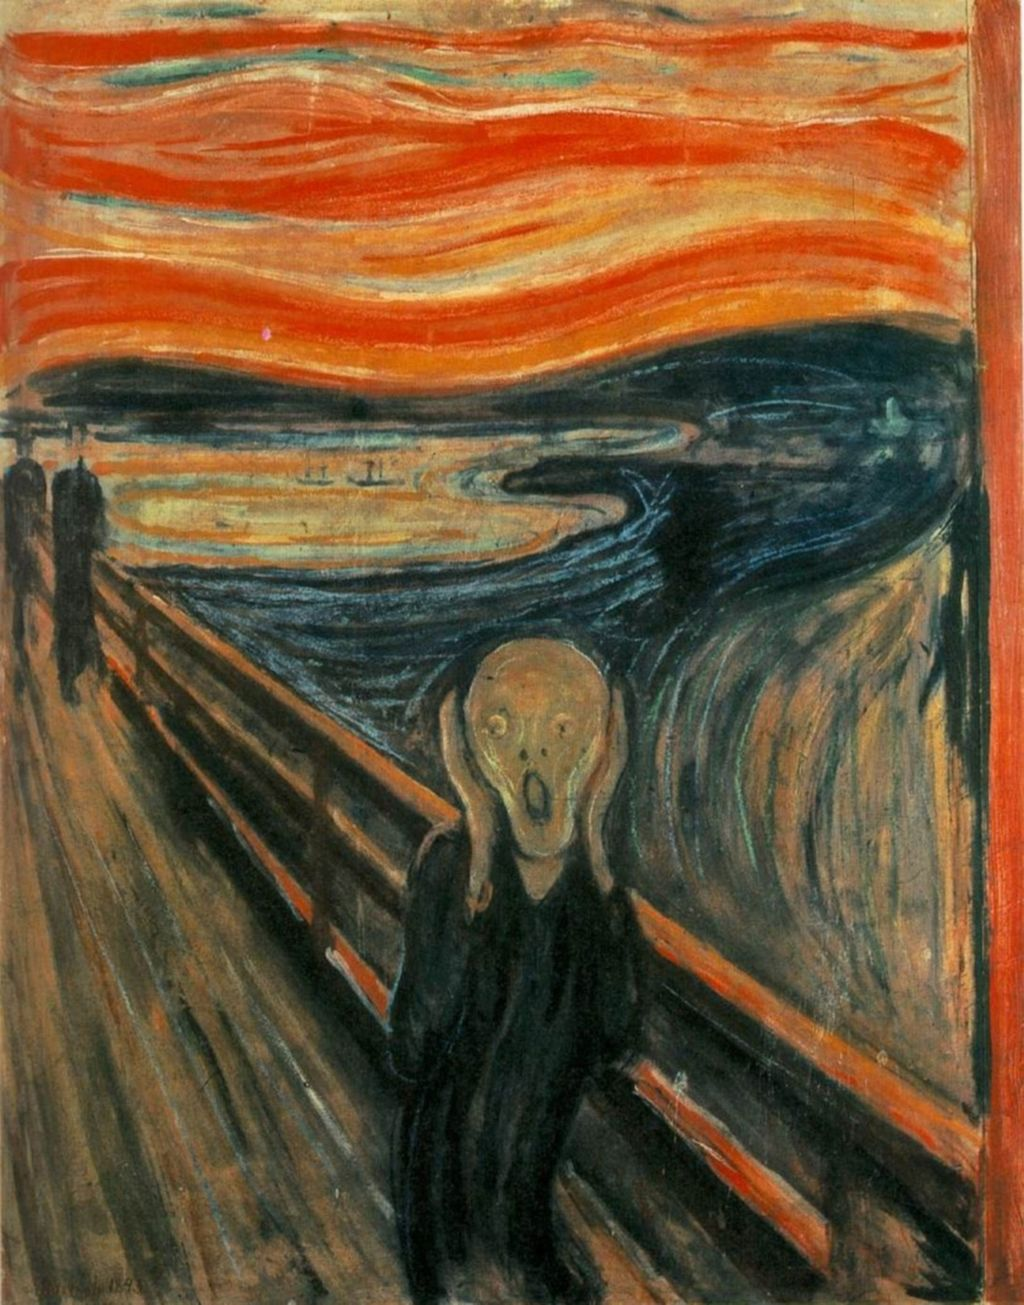 The Scream (Edvard Munch, 1893)